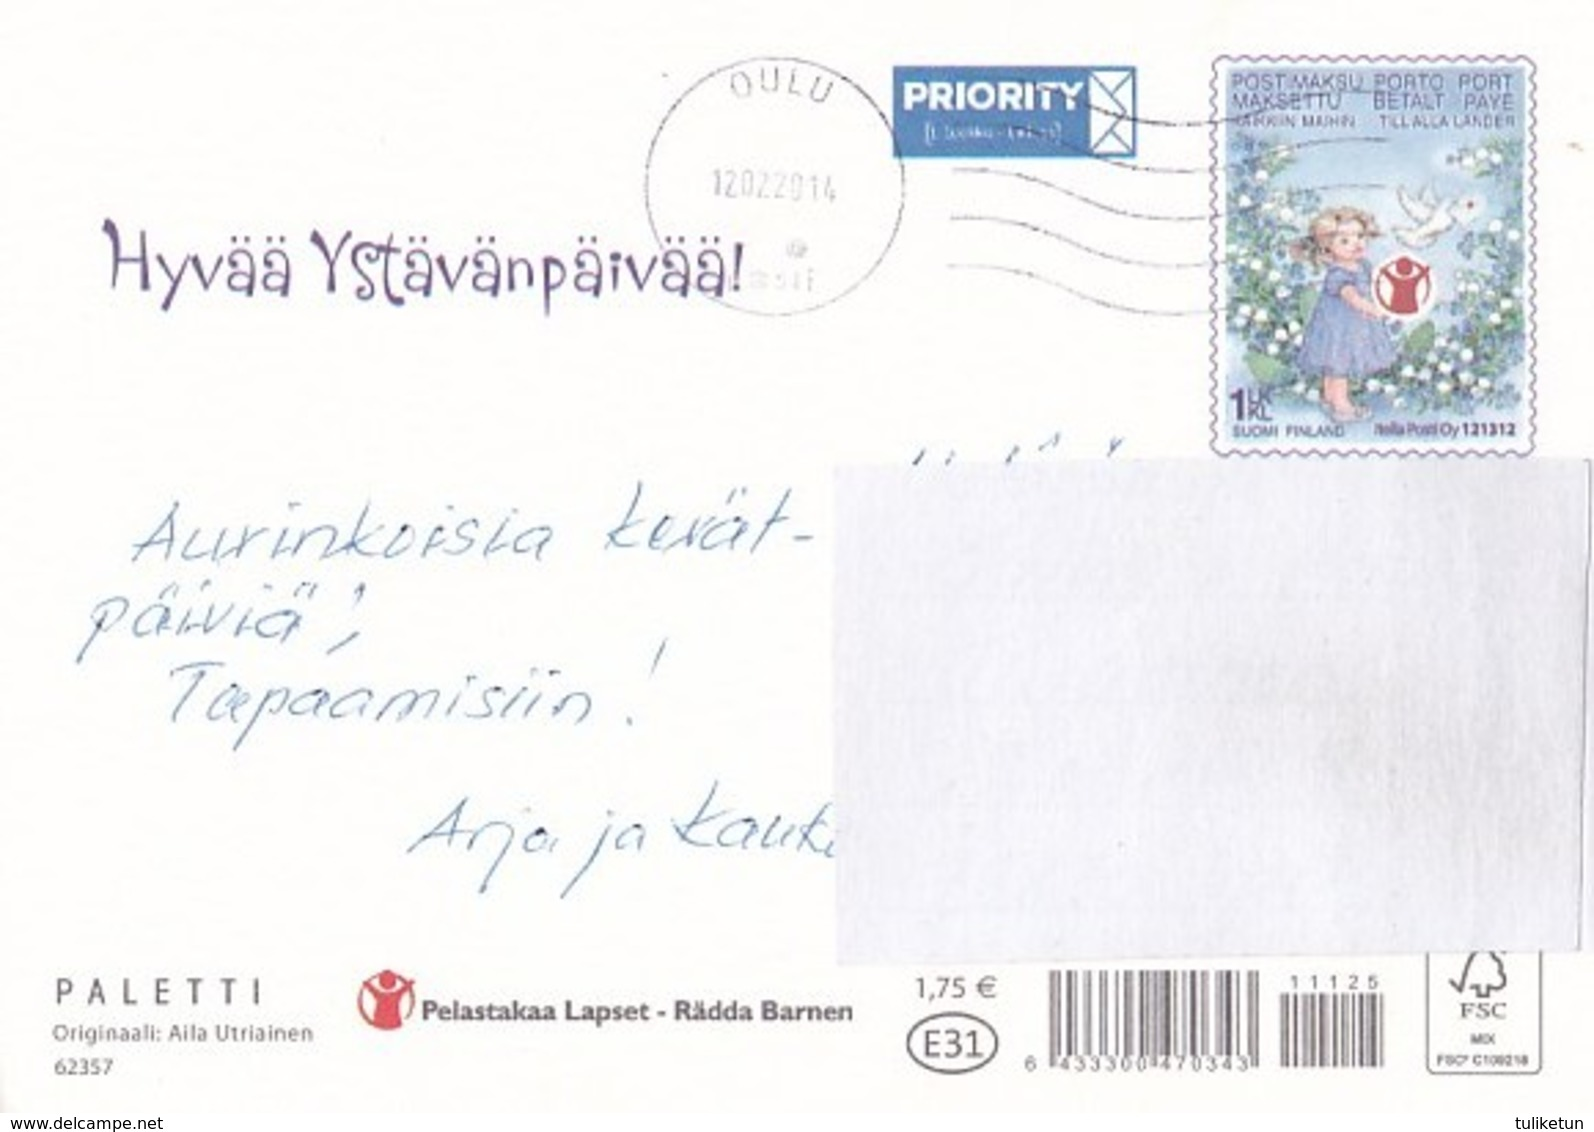 Postal Stationery - Birds - Doves - Teddy Bears Sitting Together - Save The Kids - Suomi Finland - Postage Paid - Interi Postali